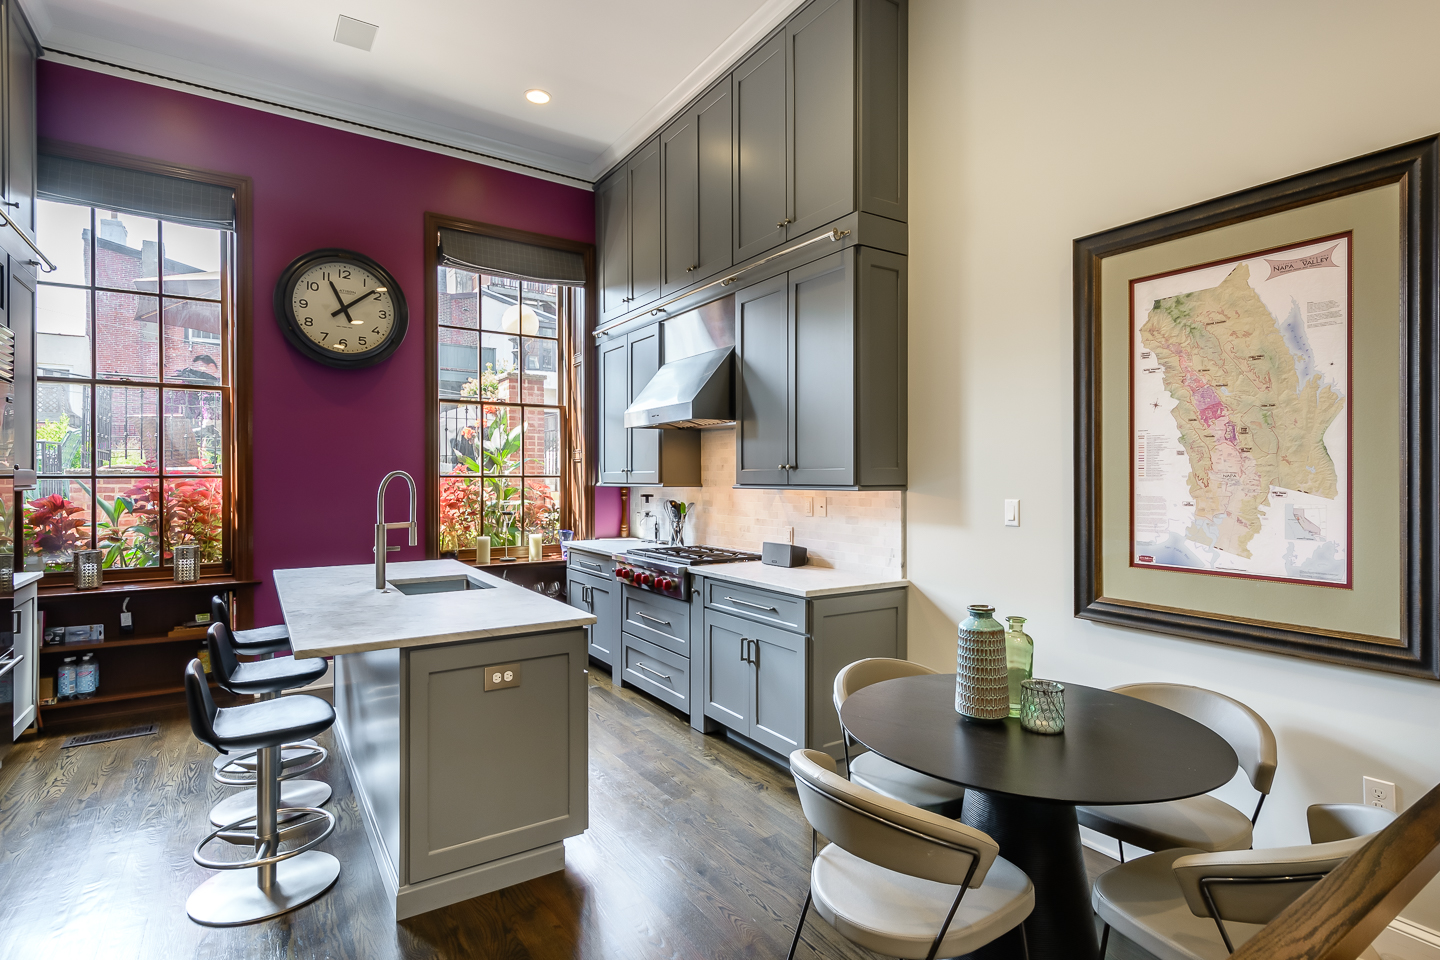 Philadelphia+Rittenhouse+Luxury+Condo+Home-5.jpg